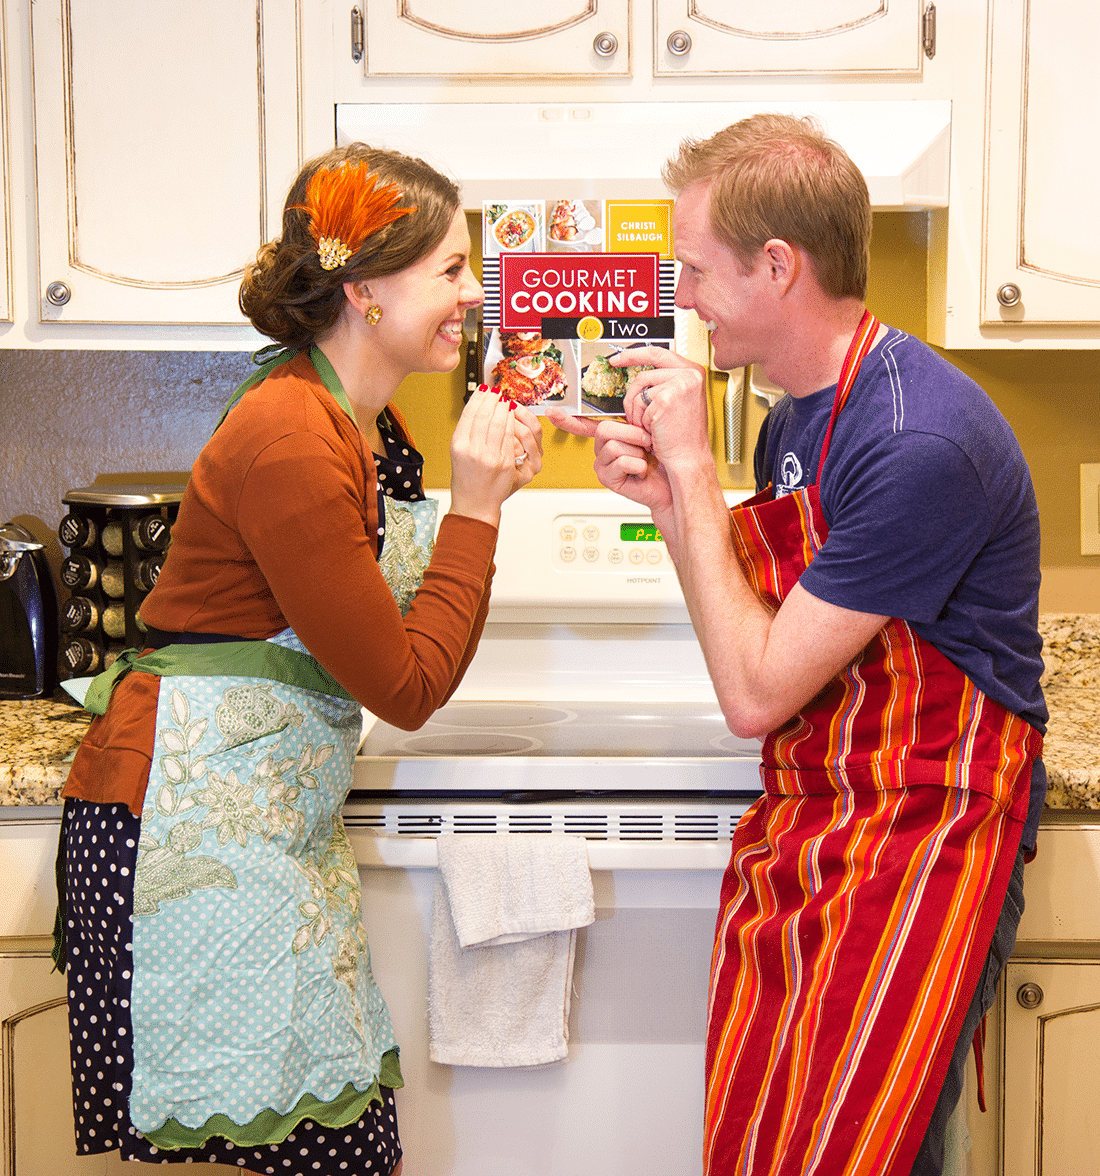 Romantic Date Night- Cook a Romantic Meal at Home with couple cooking made easy and romantic!